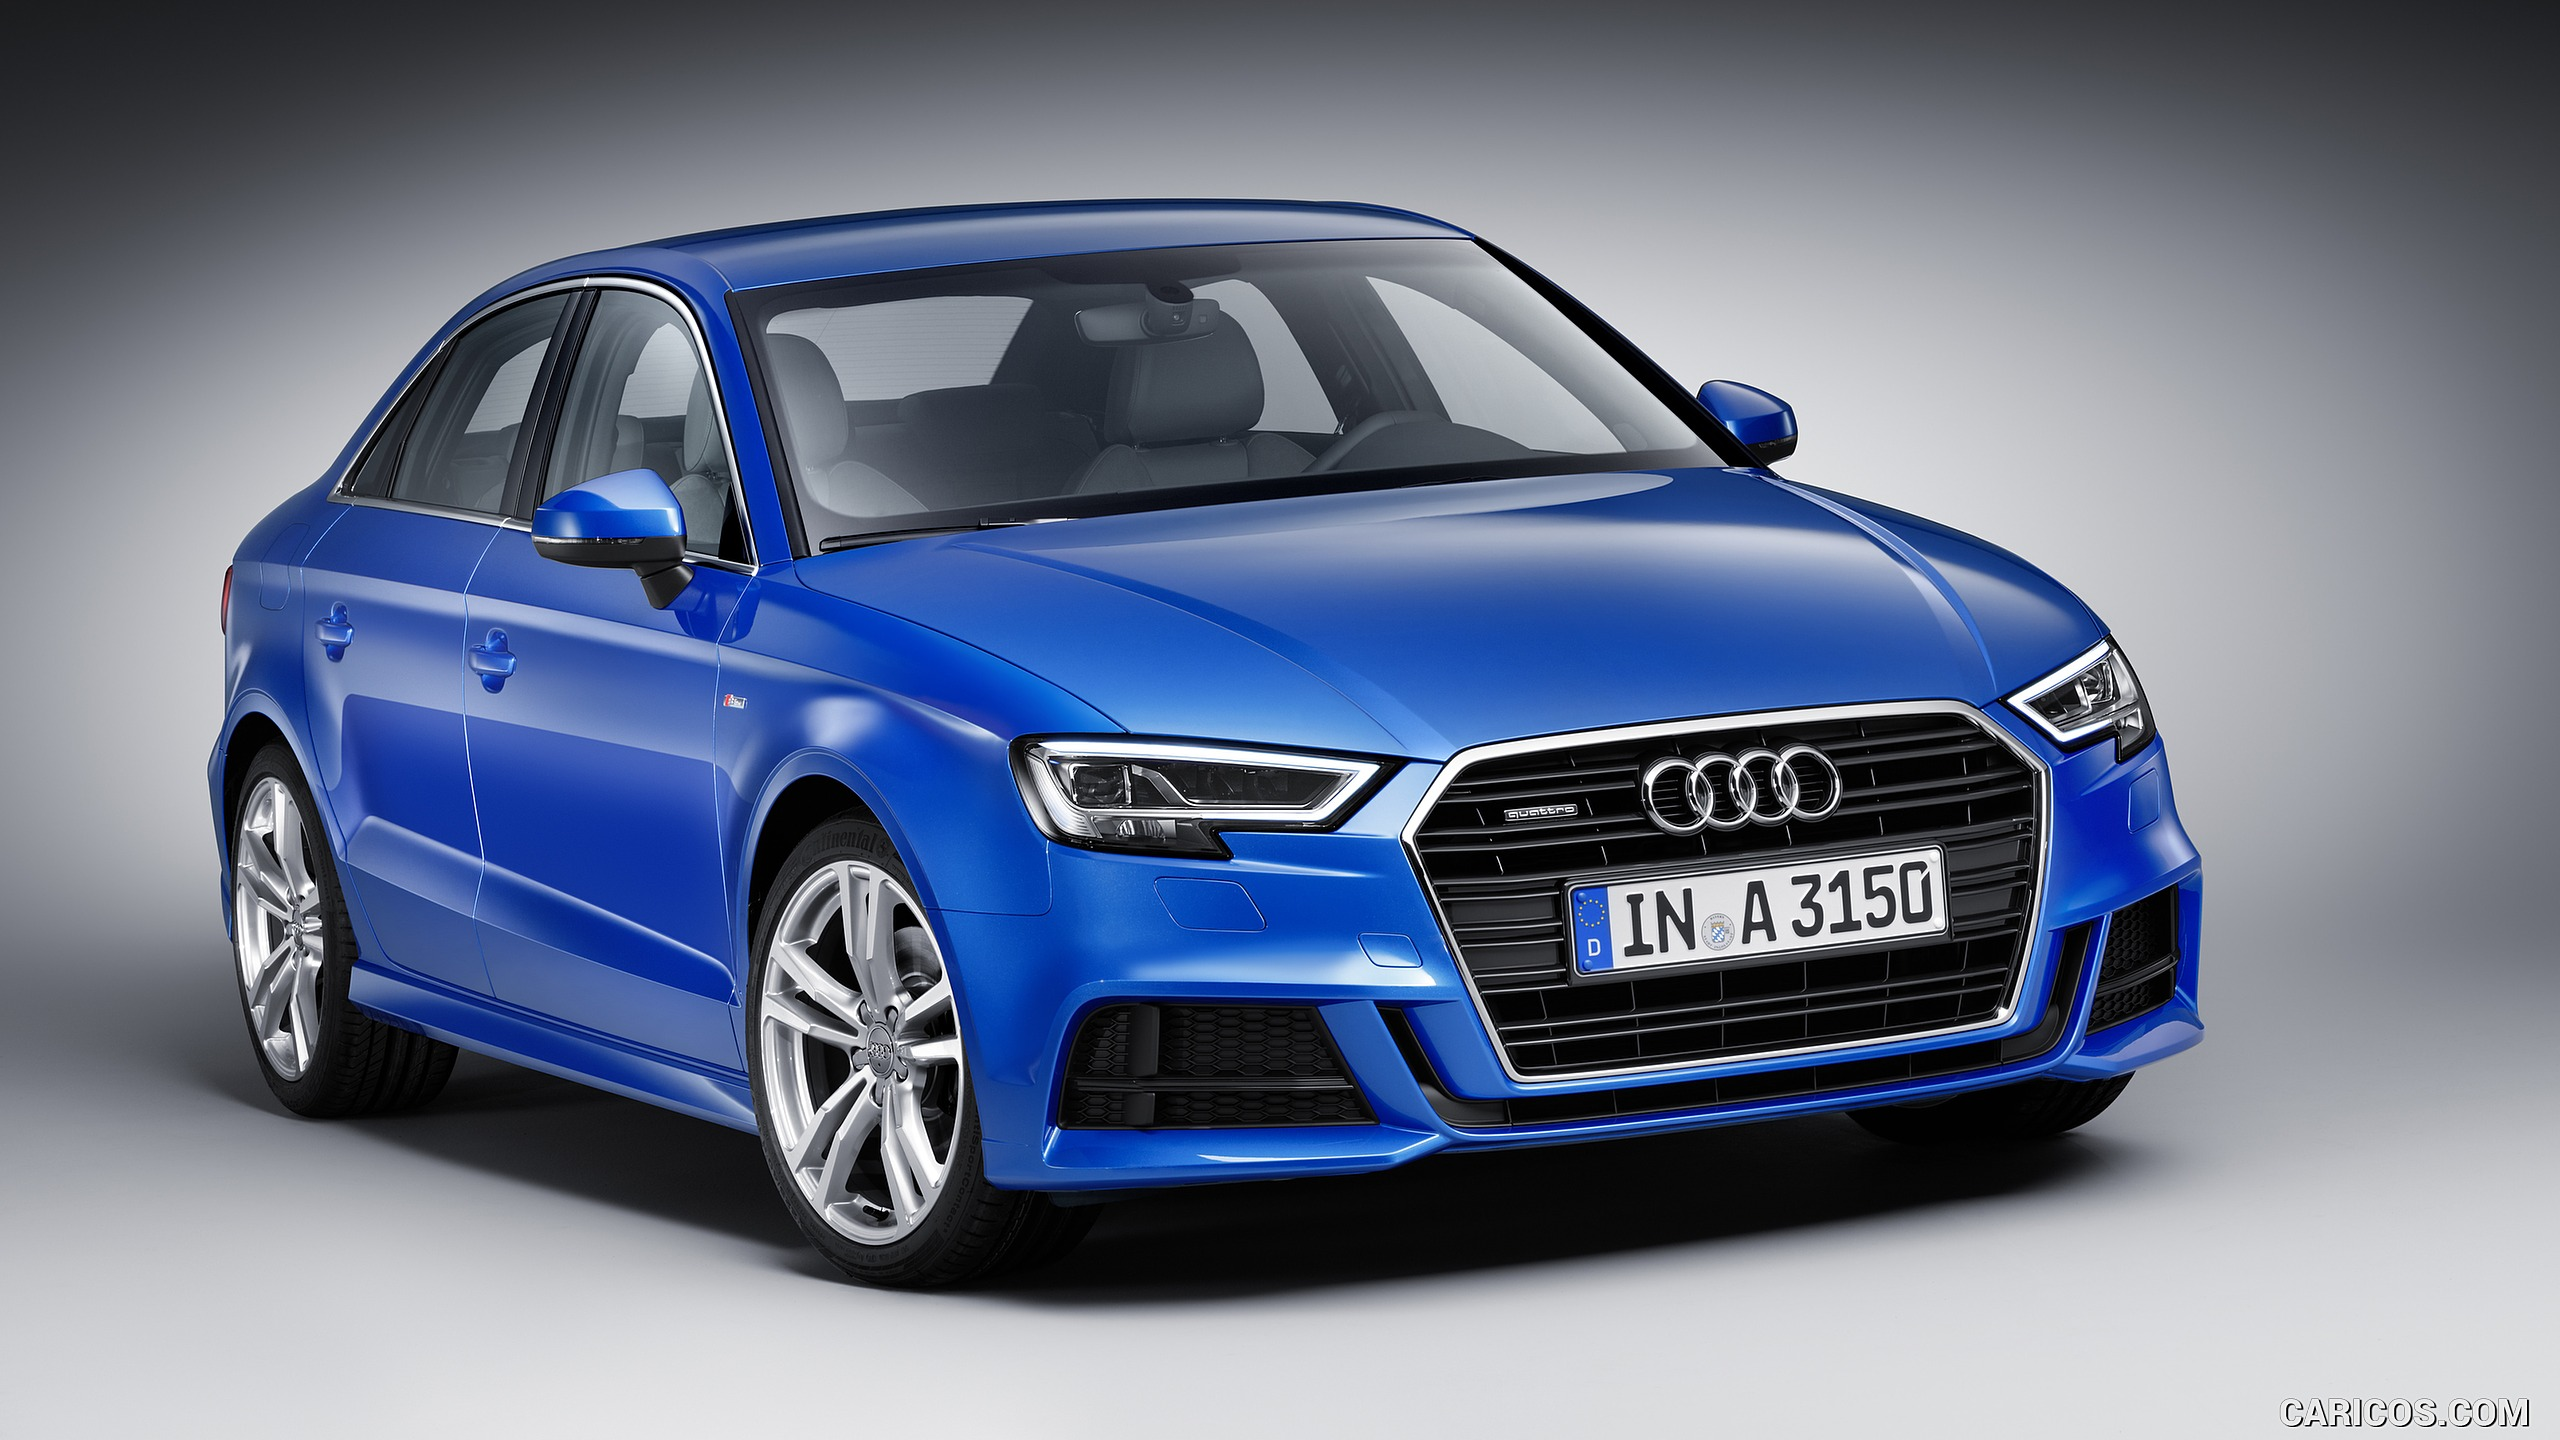 2017 Audi A3 Sedan (Color: Ara Blue) - Front | HD Wallpaper #6